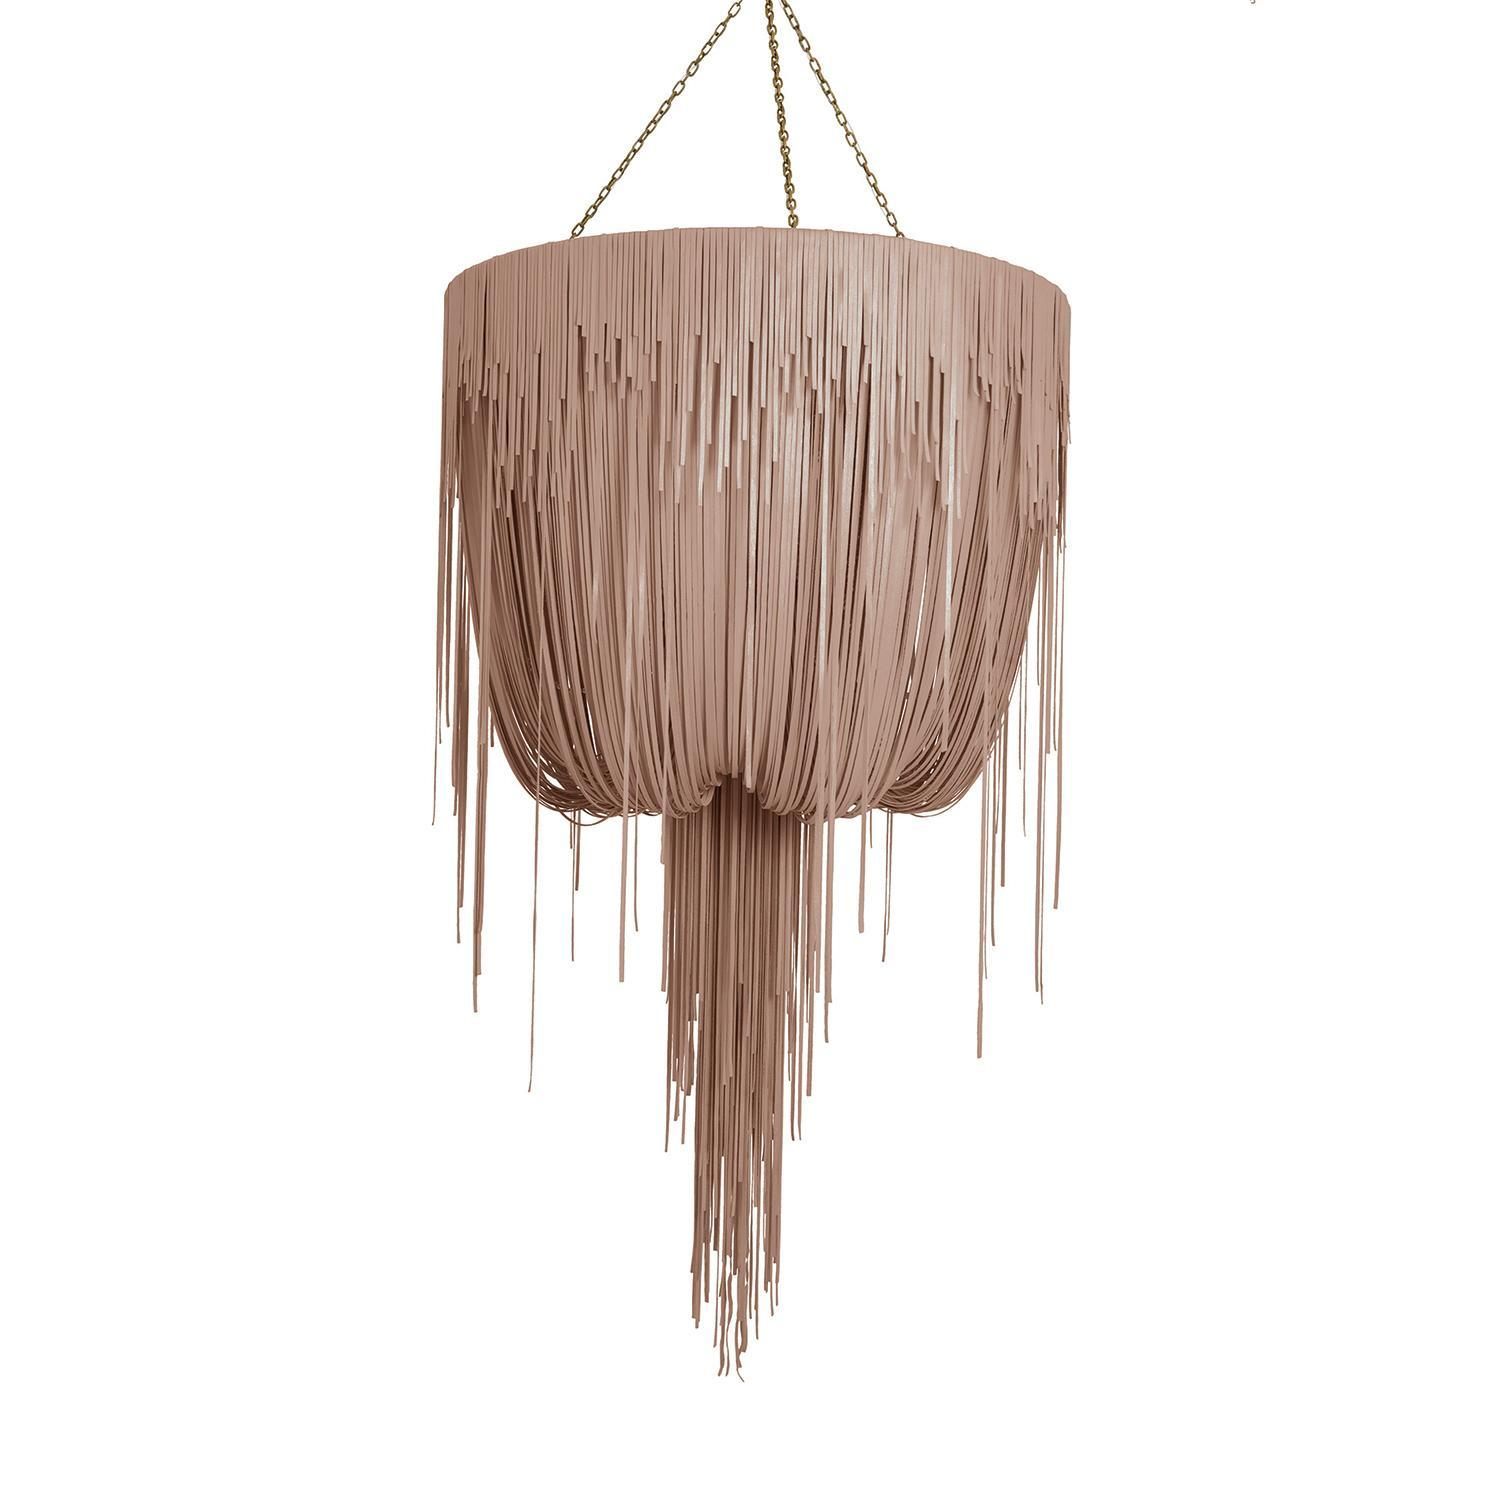 Urchin Chandelier - Large - Metallic Leather (Made to Order)